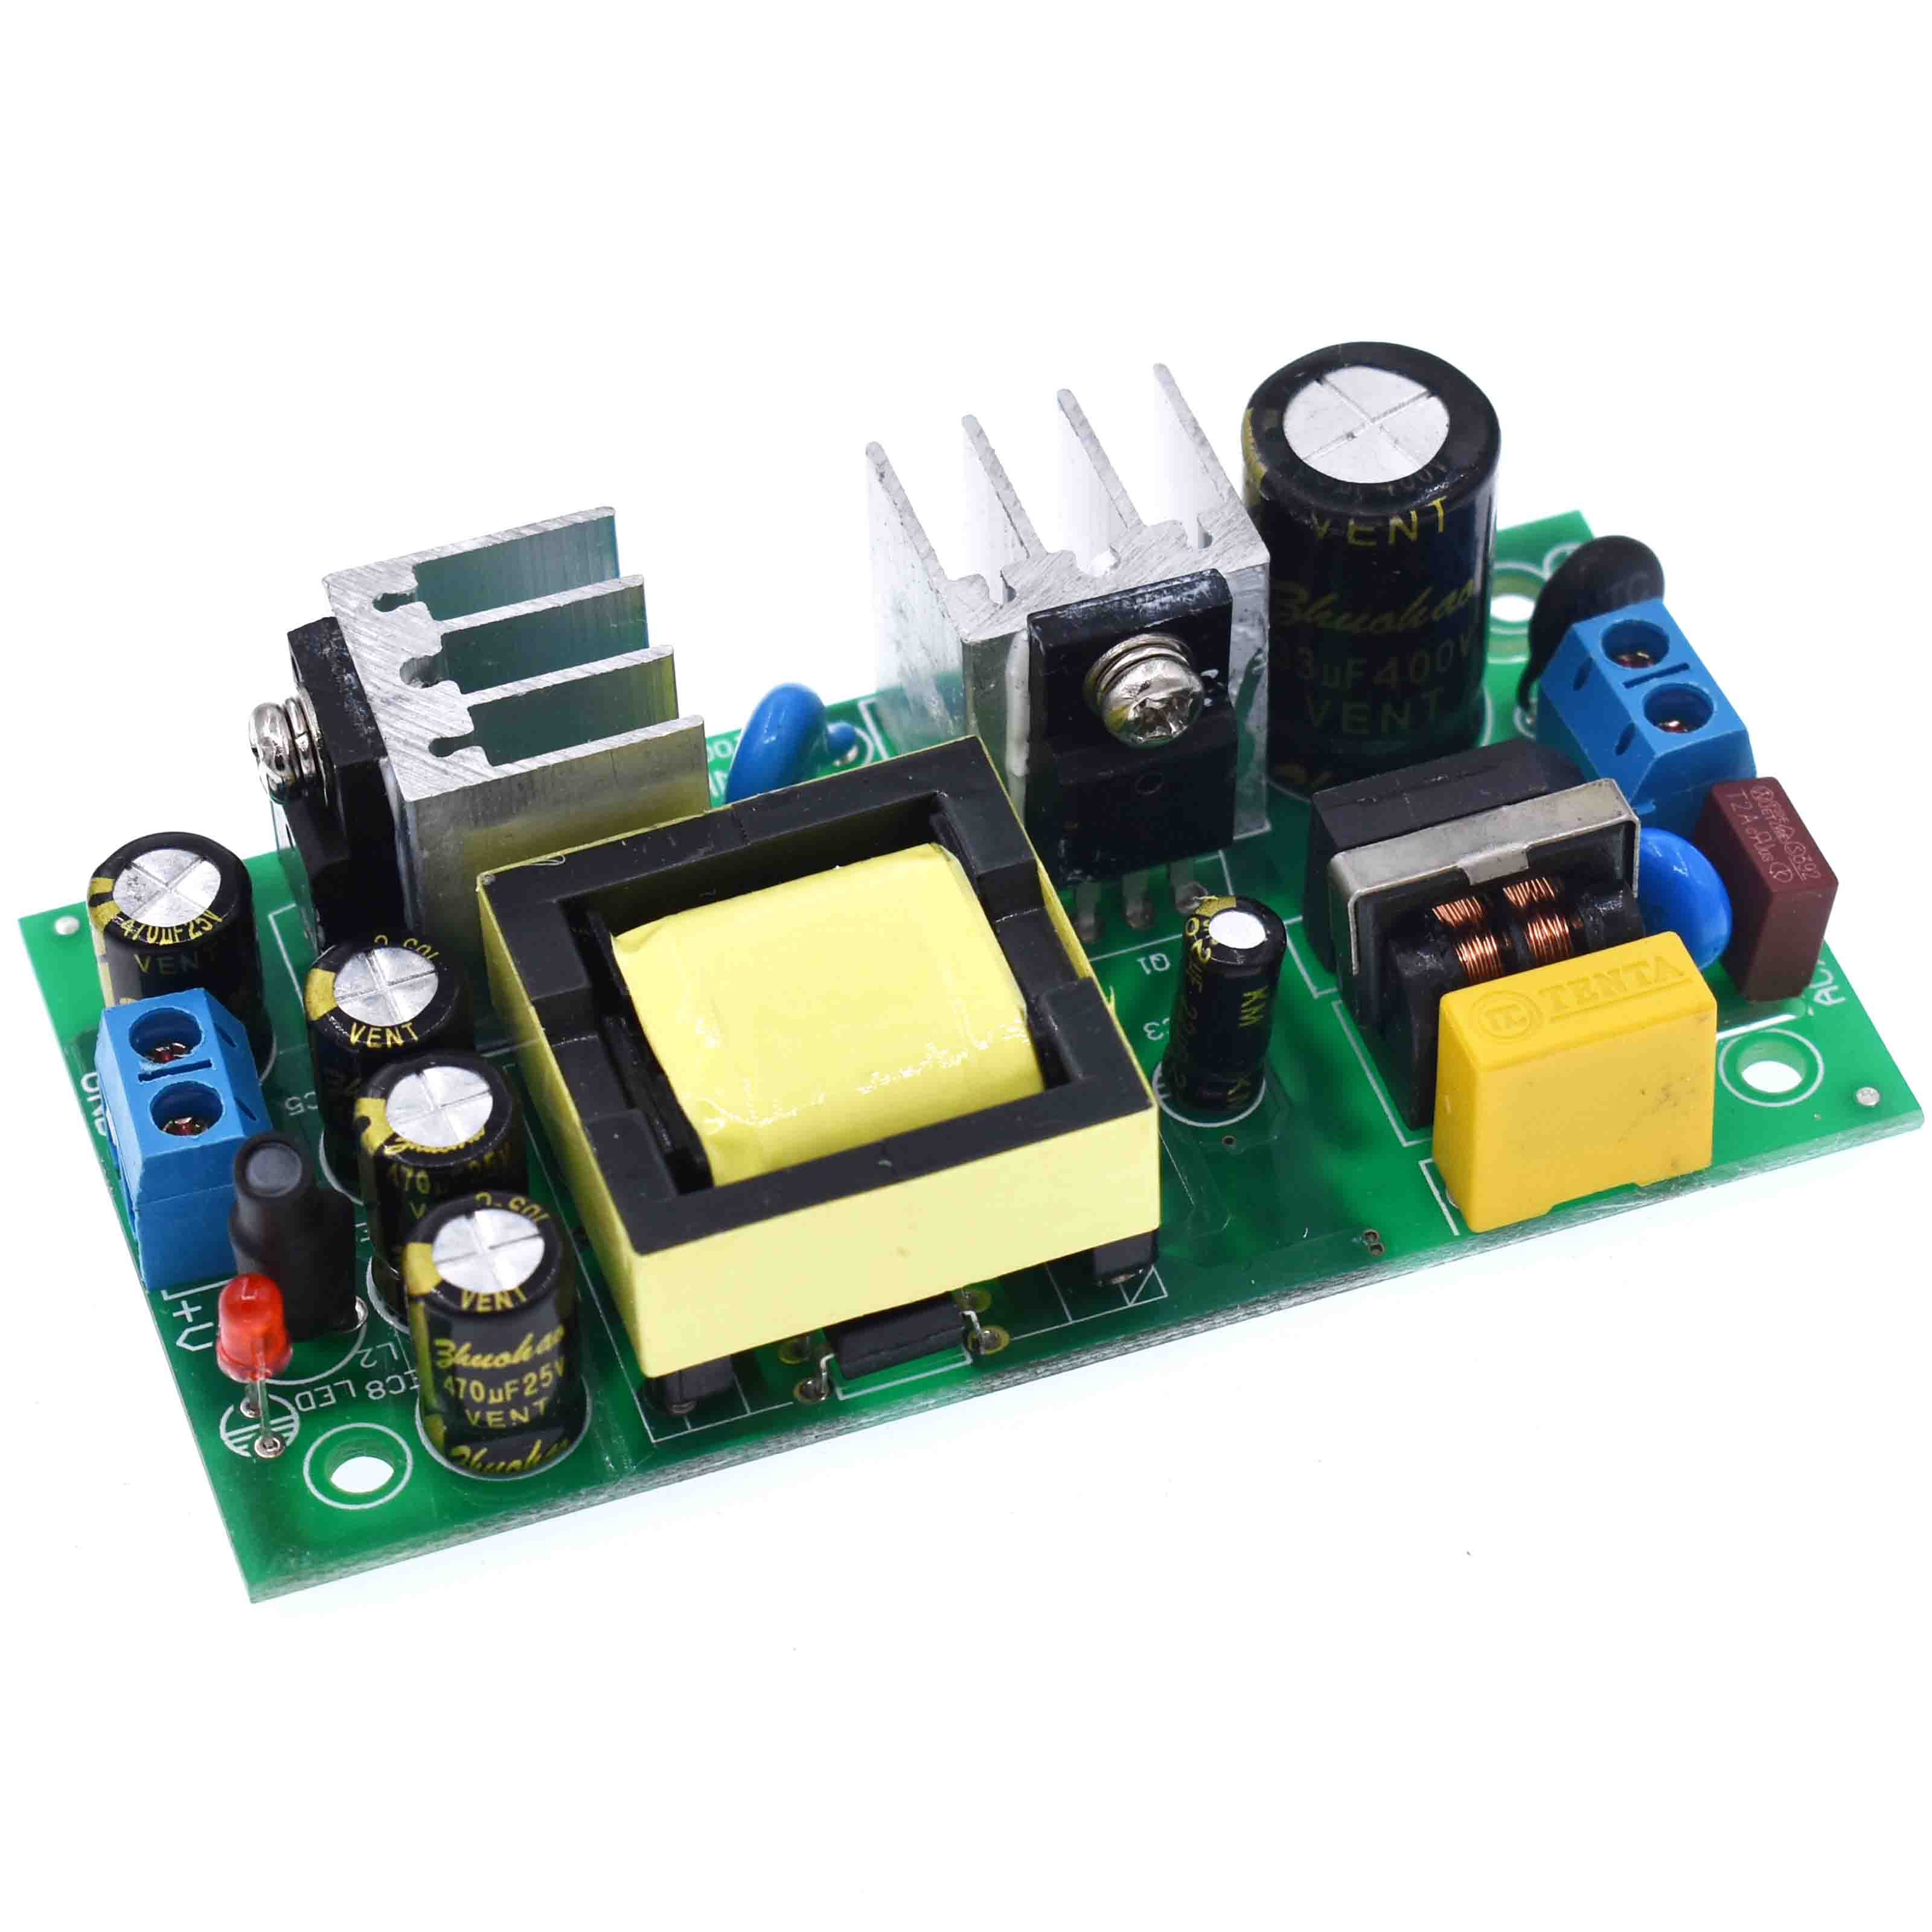 AC-DC 12V 3A 24V 1.5A 12V3A 24V1.5A 36W Switching Power Supply Module Bare Circuit 220V to 12V 24V Board for Replace RepairAC-DC 12V 3A 24V 1.5A 12V3A 24V1.5A 36W Switching Power Supply Module Bare Circuit 220V to 12V 24V Board for Replace Repair